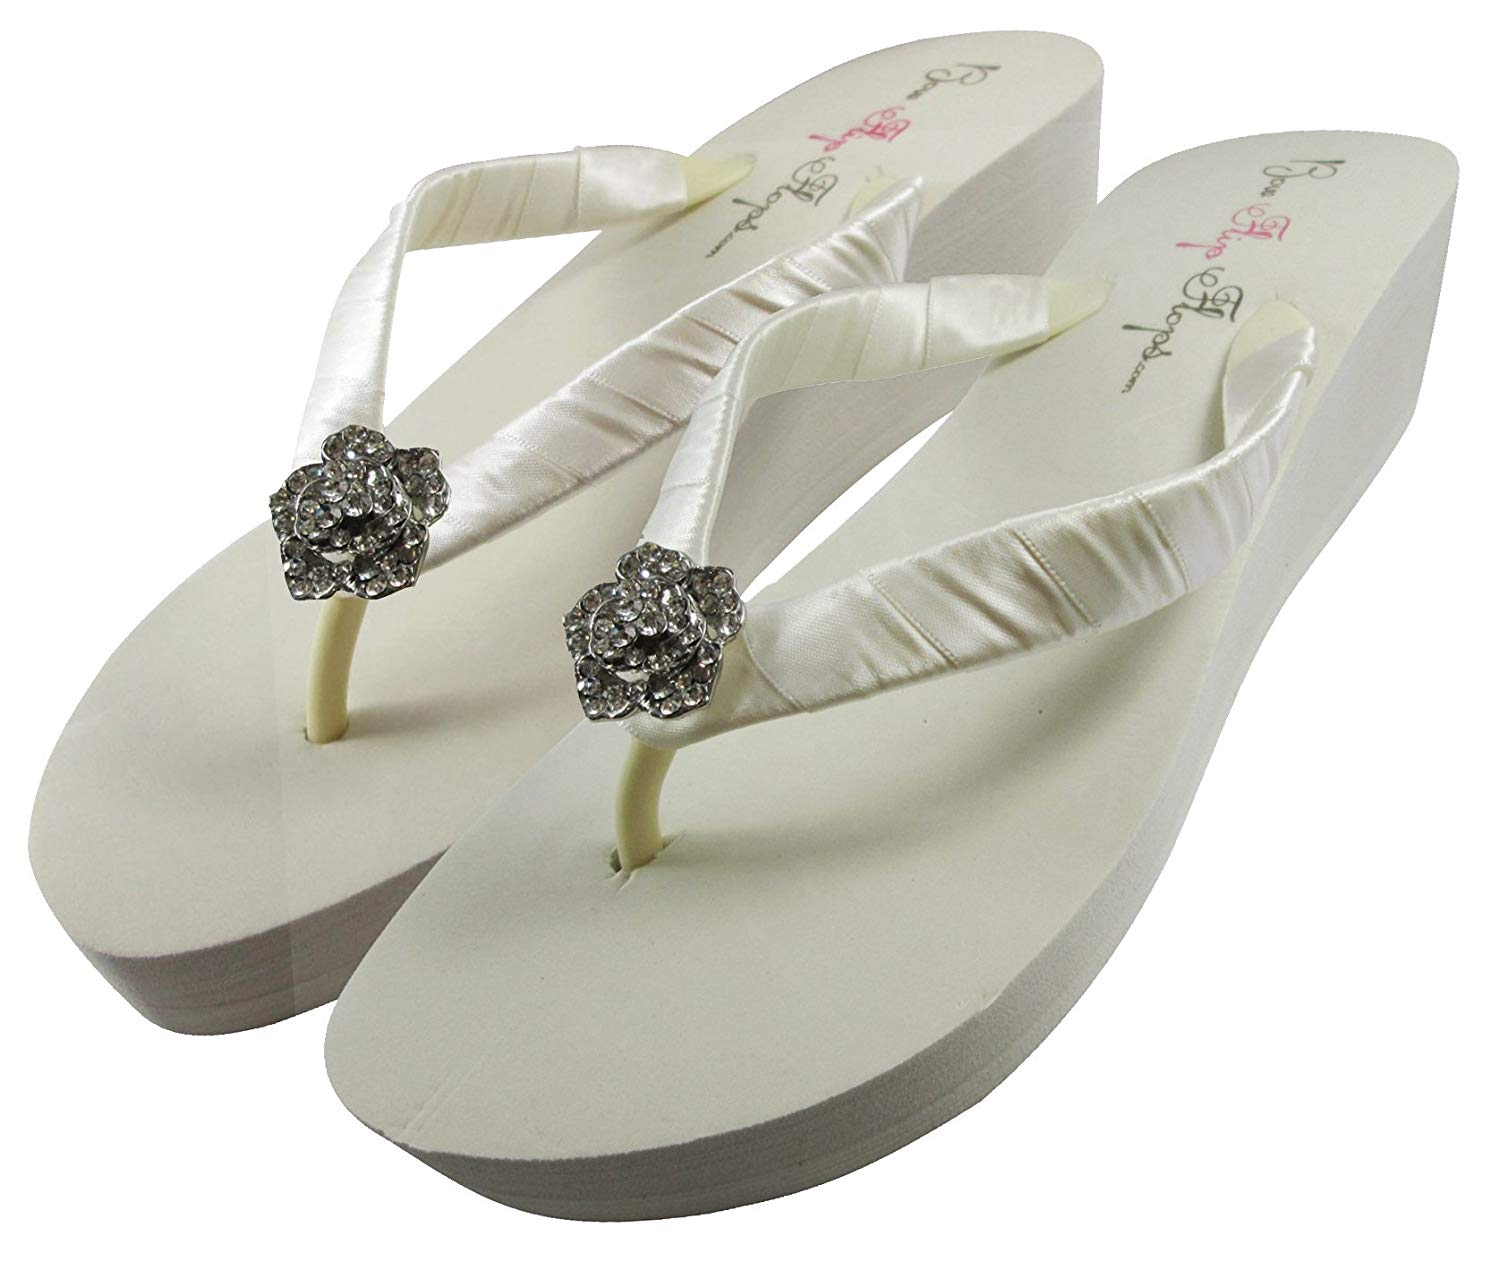 0a5ad11d5b99 Bridal Flip Flops Wedding Ivory Wedge White Platform Bride Rose Heel Satin Rhinestone  Flip Flops